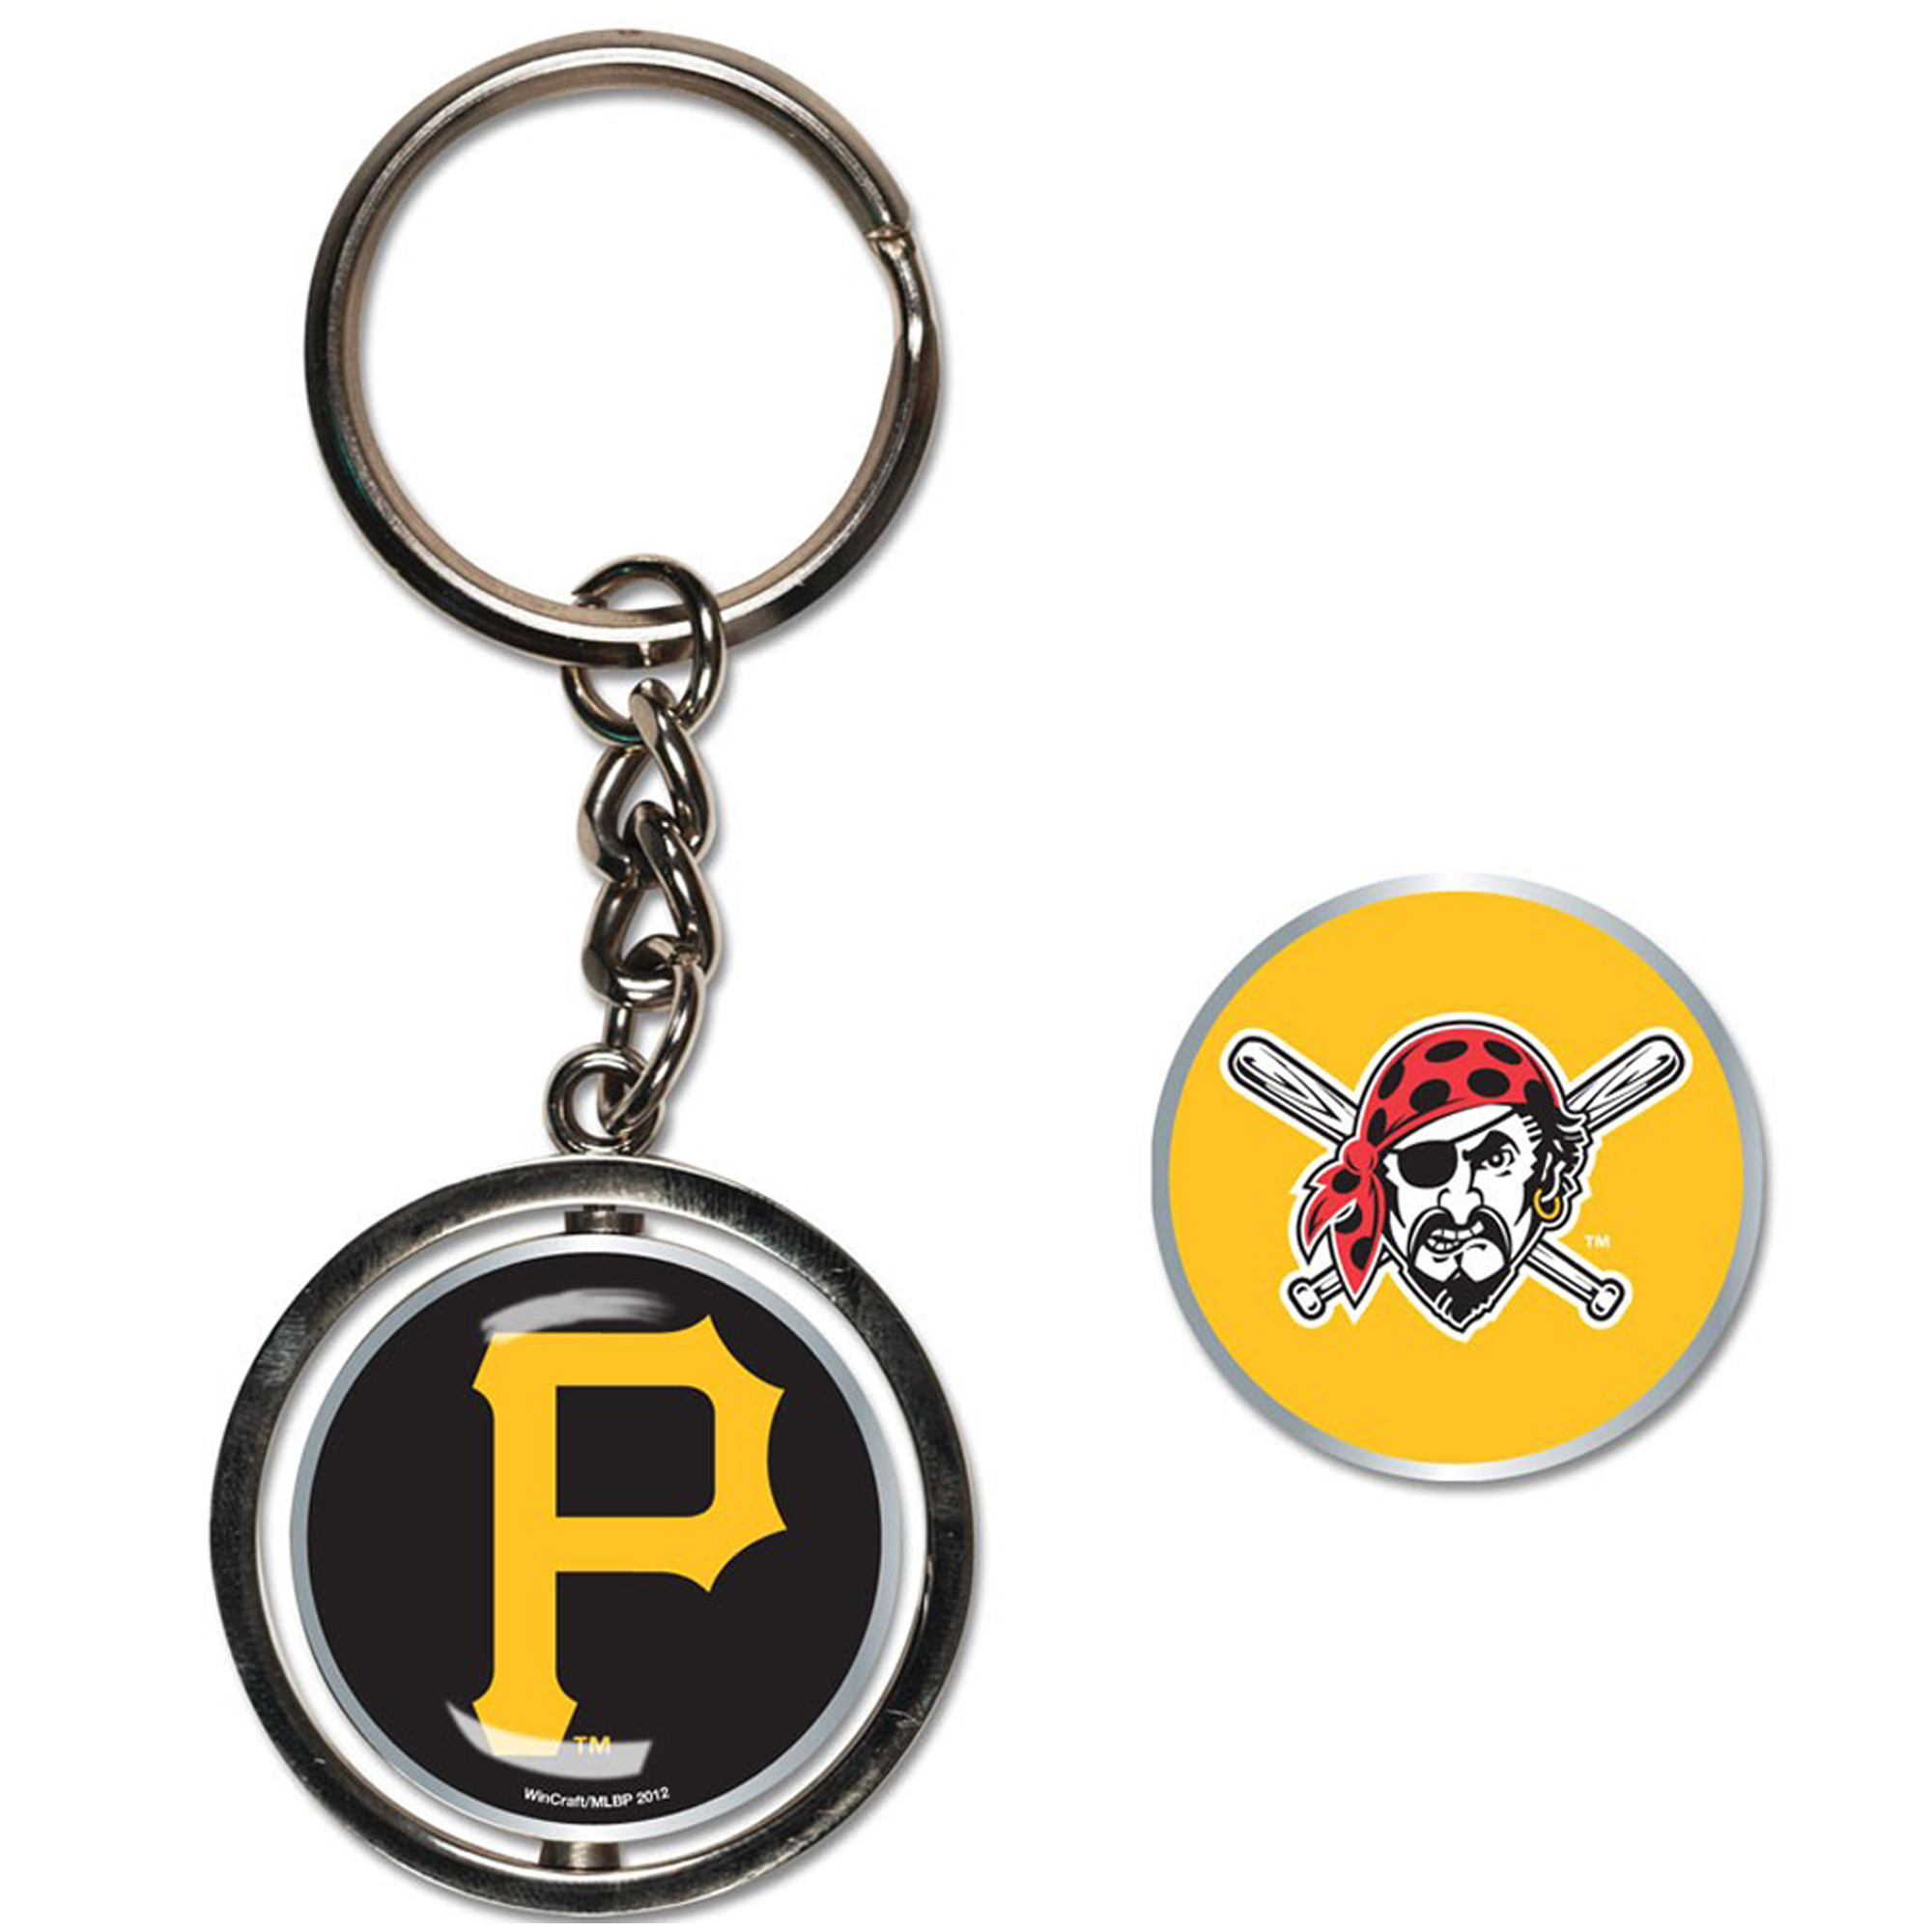 Pittsburgh Pirates WinCraft Spinner Key Ring - No Size